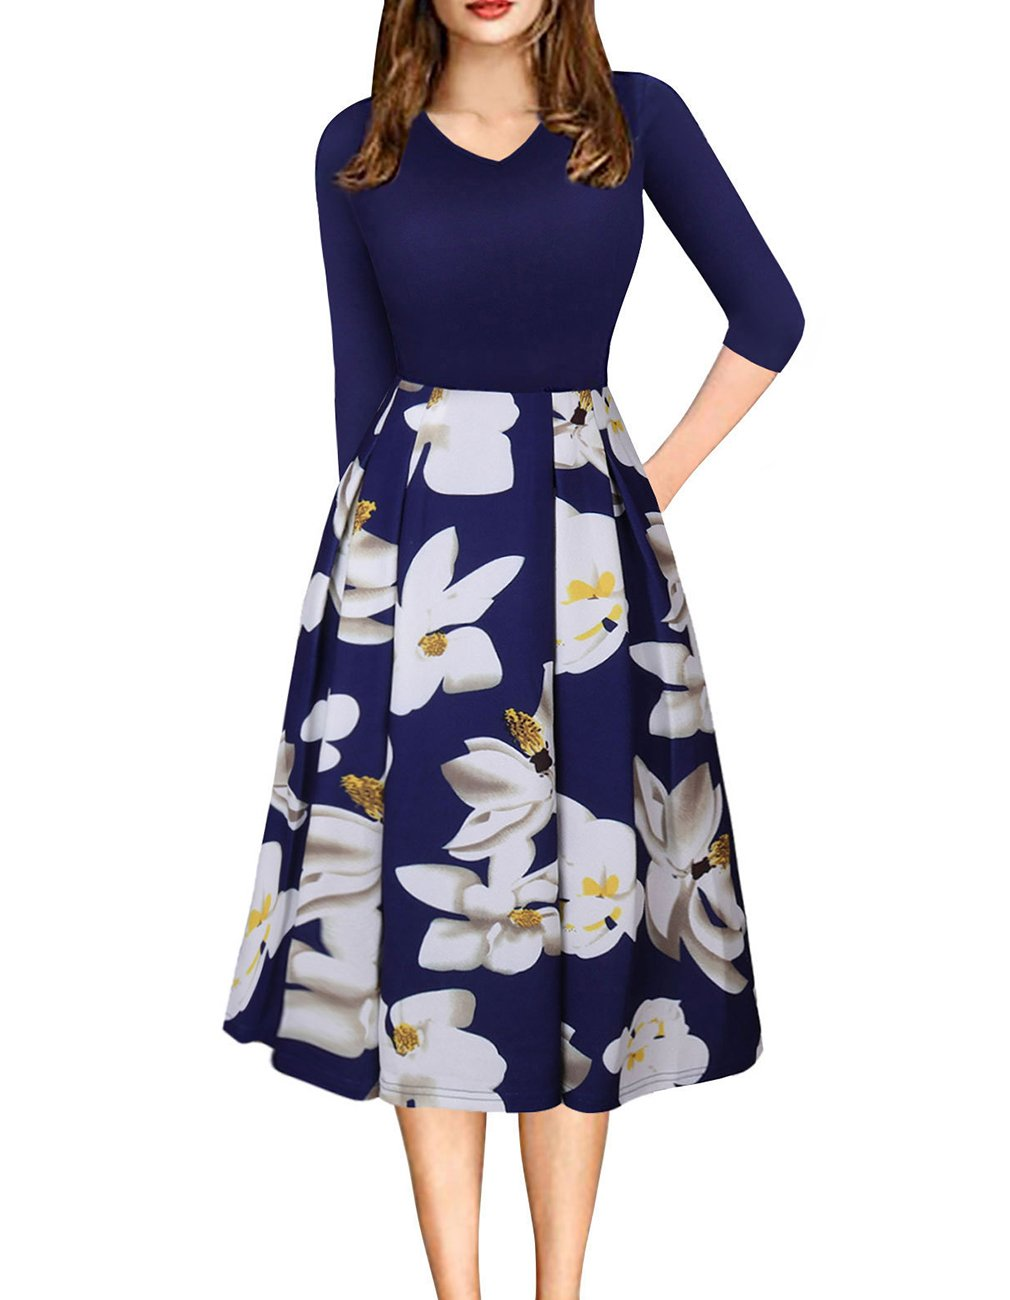 Womens Vintage 3/4 Sleeve Bohemia Floral Midi Patchwork Dress Puffy Swing Casual Party Evening Dress with Pocket (Blue,S)